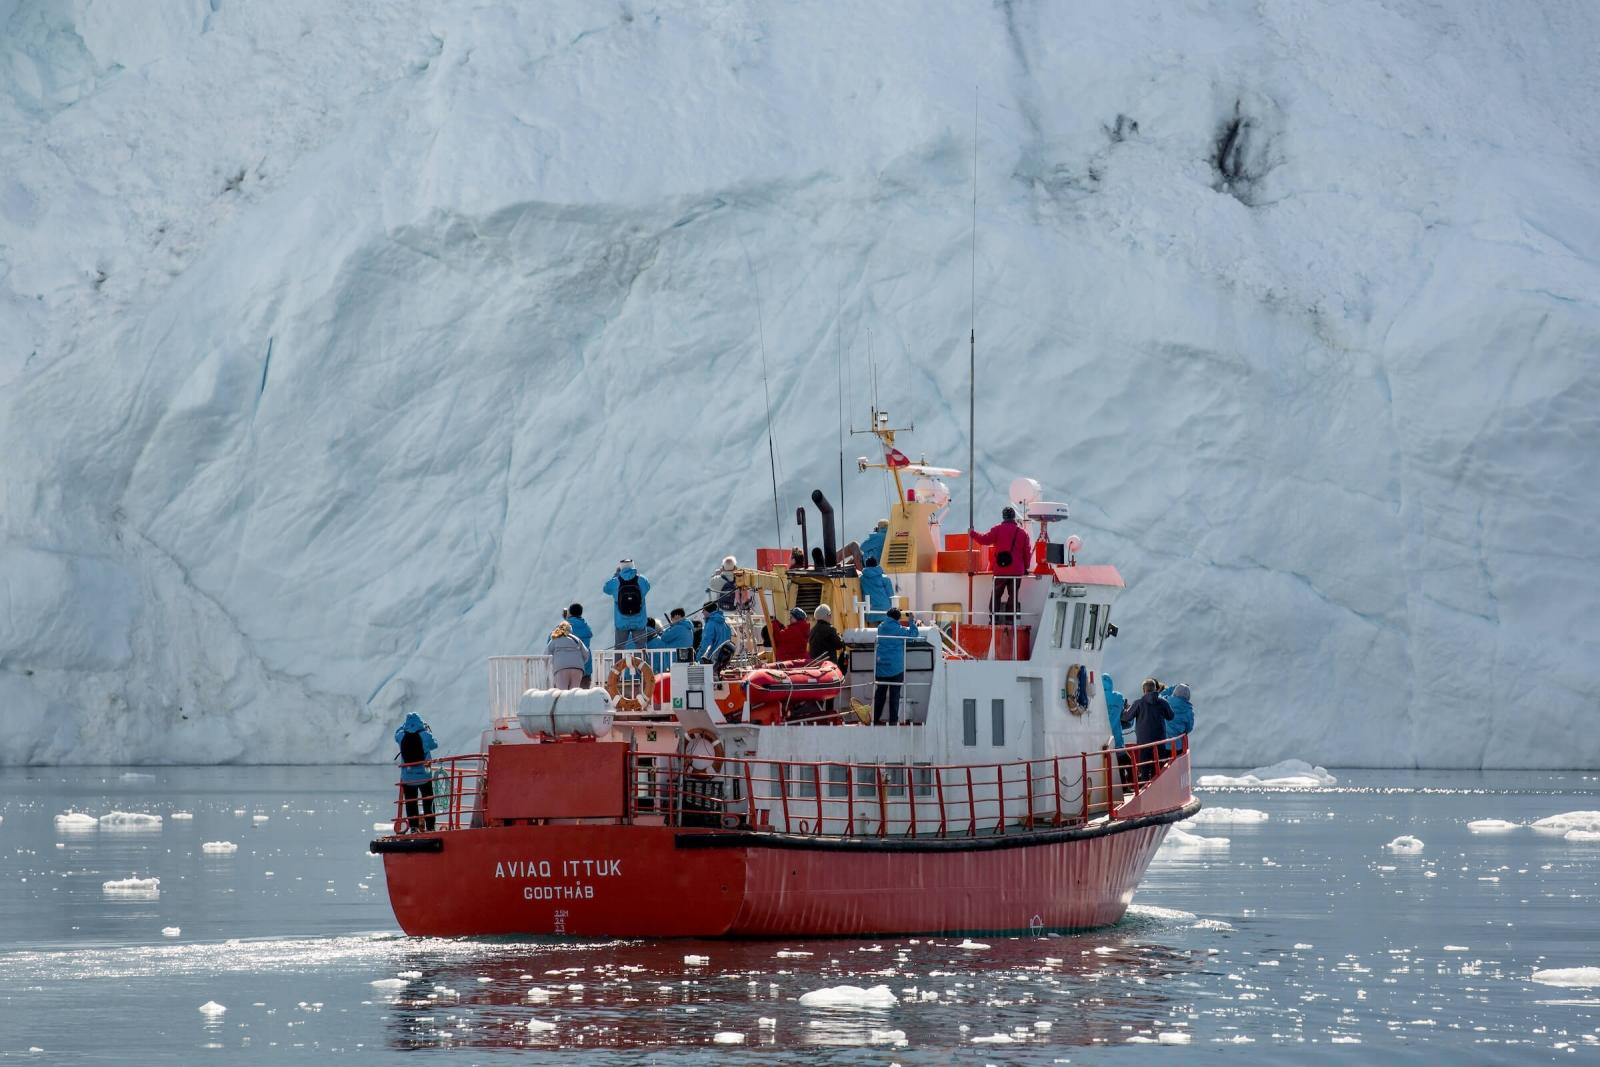 A tour boat in front of an iceberg wall near Ilulissat in Greenland. Photo by Mads Pihl